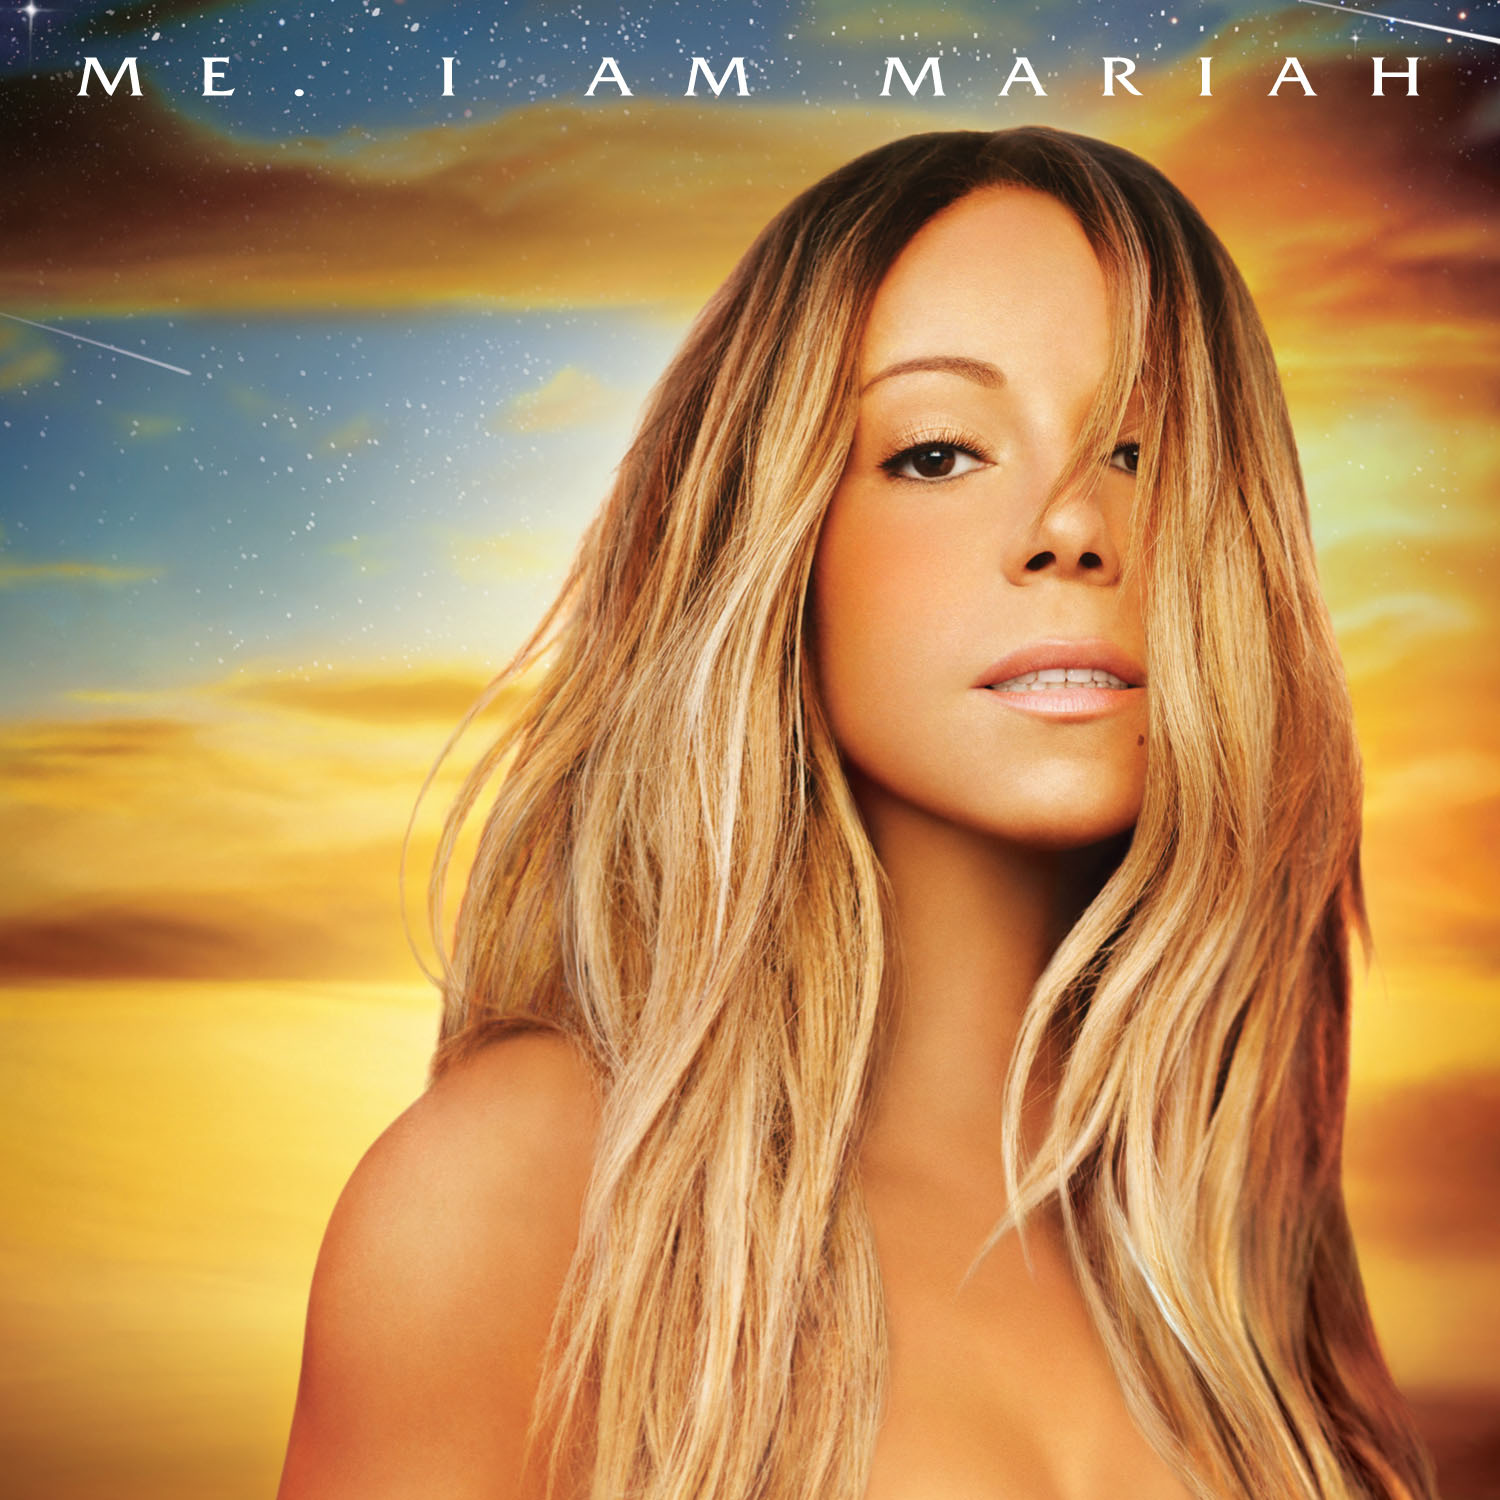 This song have always meant so much to me. - Mariah Carey